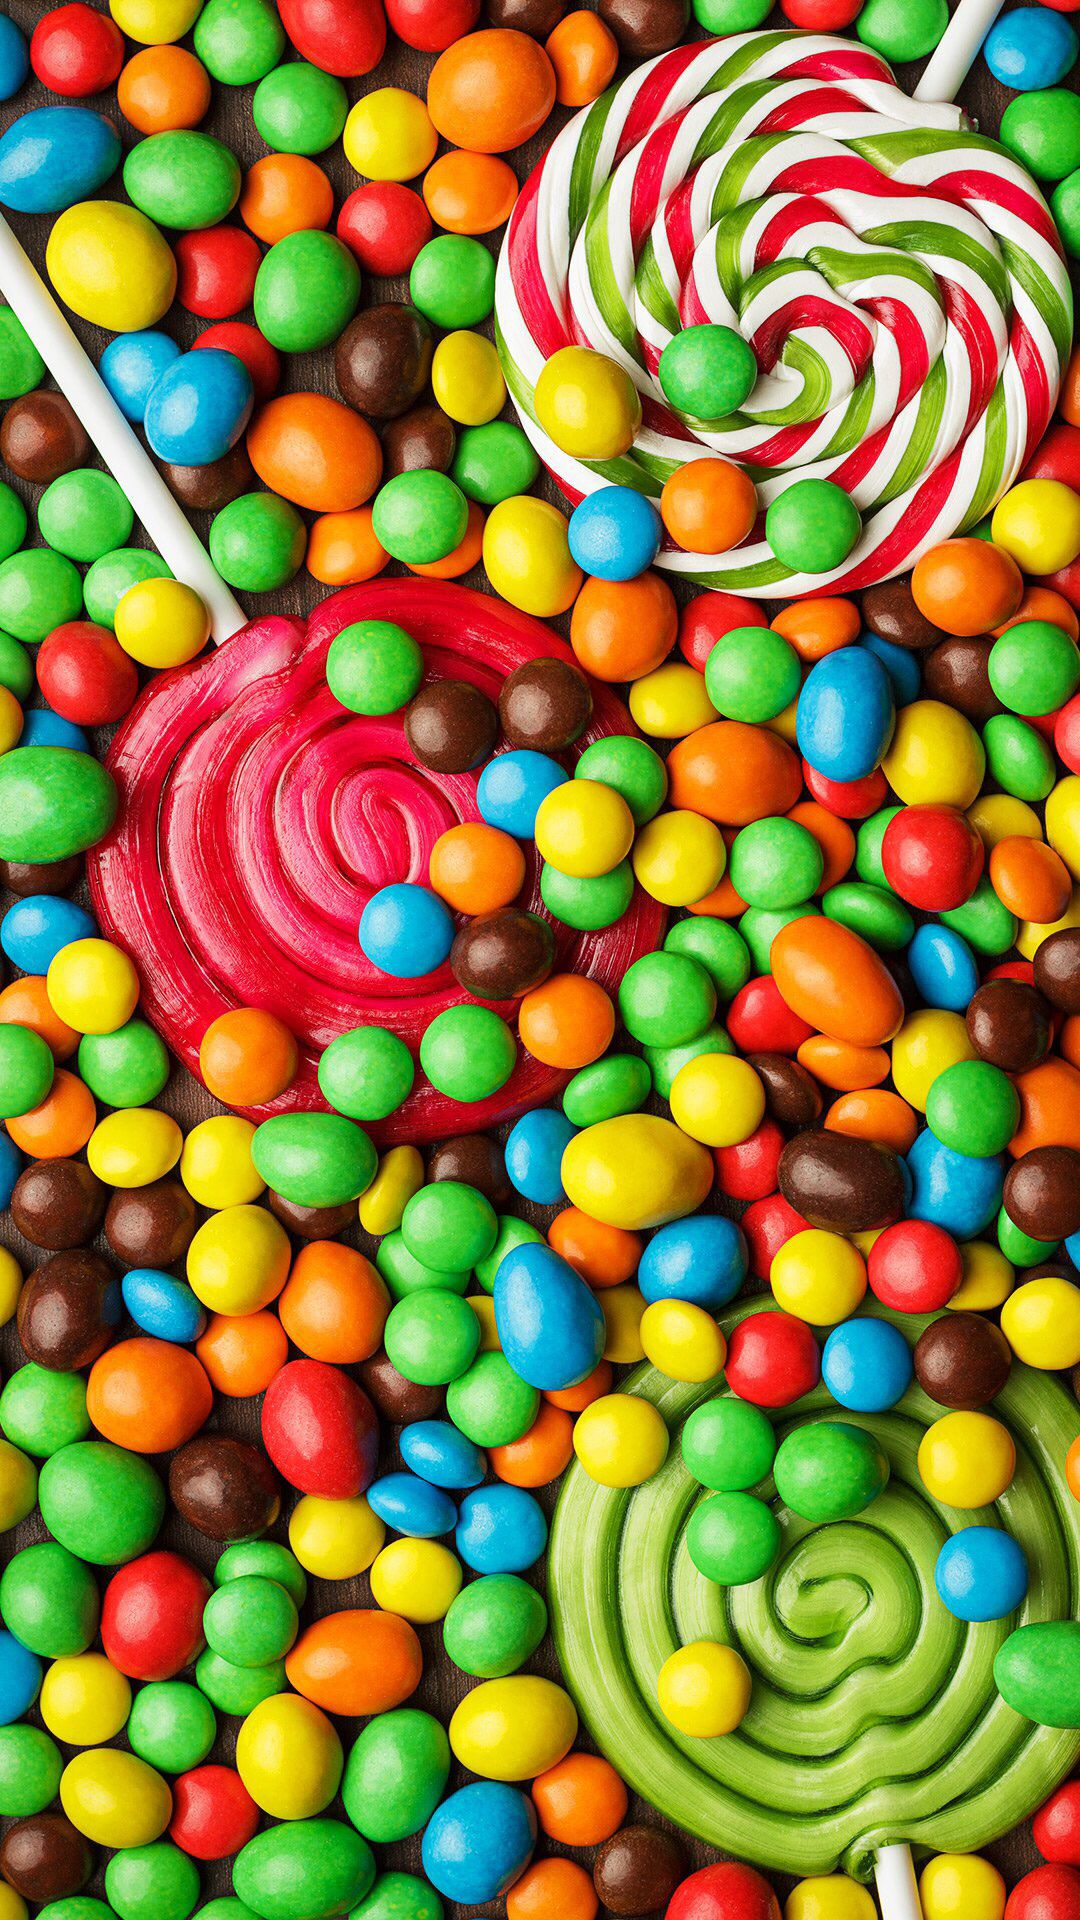 Candy Food Wallpaper Cute Food Wallpaper Candy Background